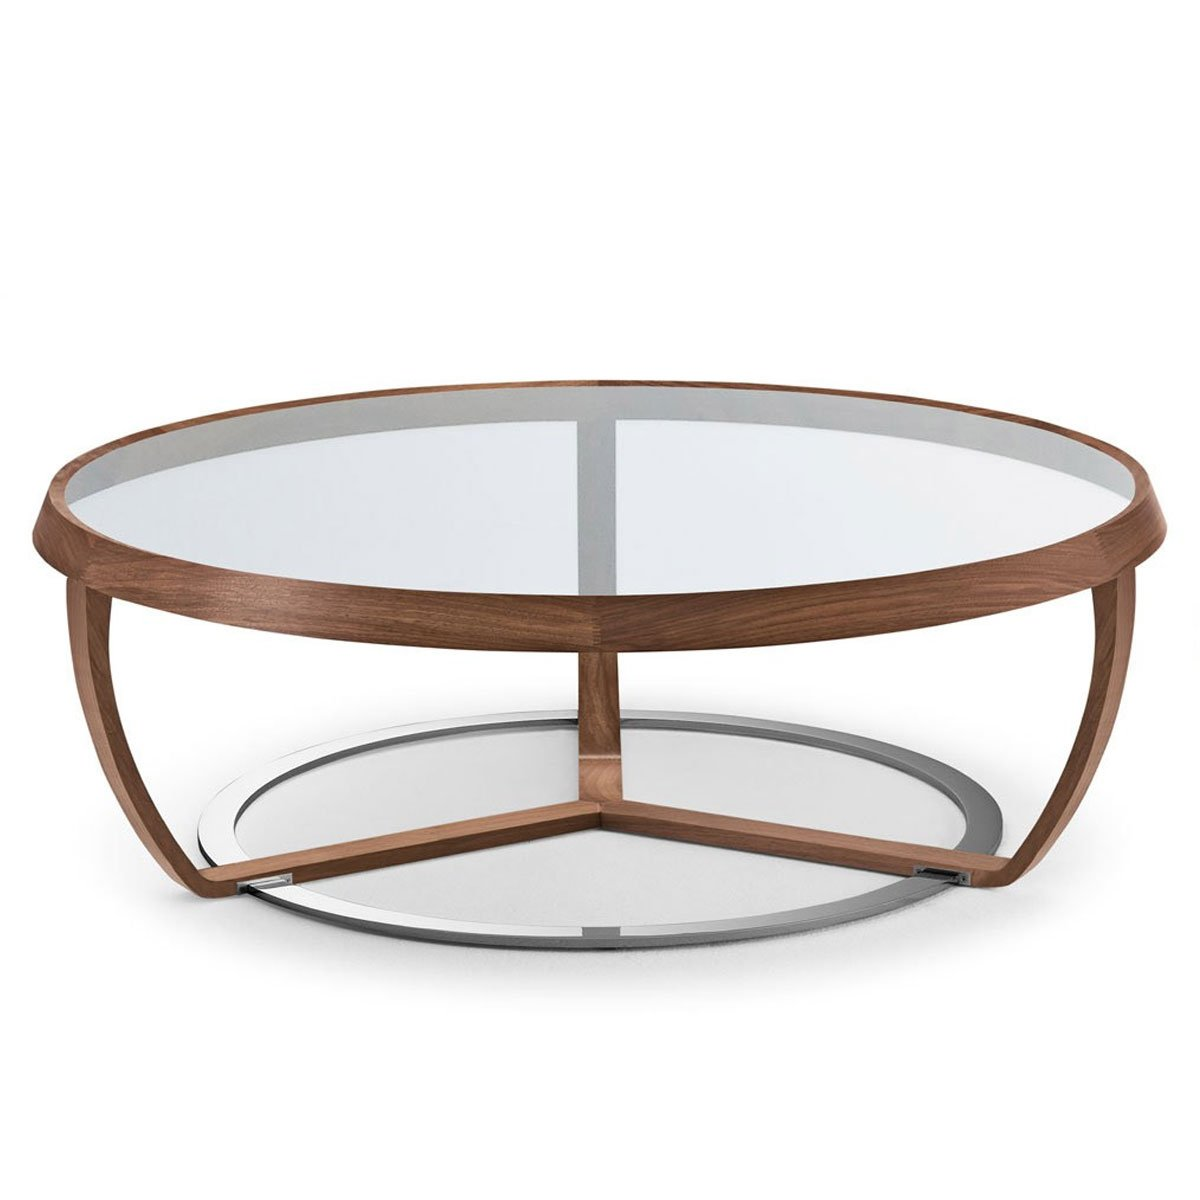 Time Walnut And Glass Coffee Table Klarity Glass Furniture